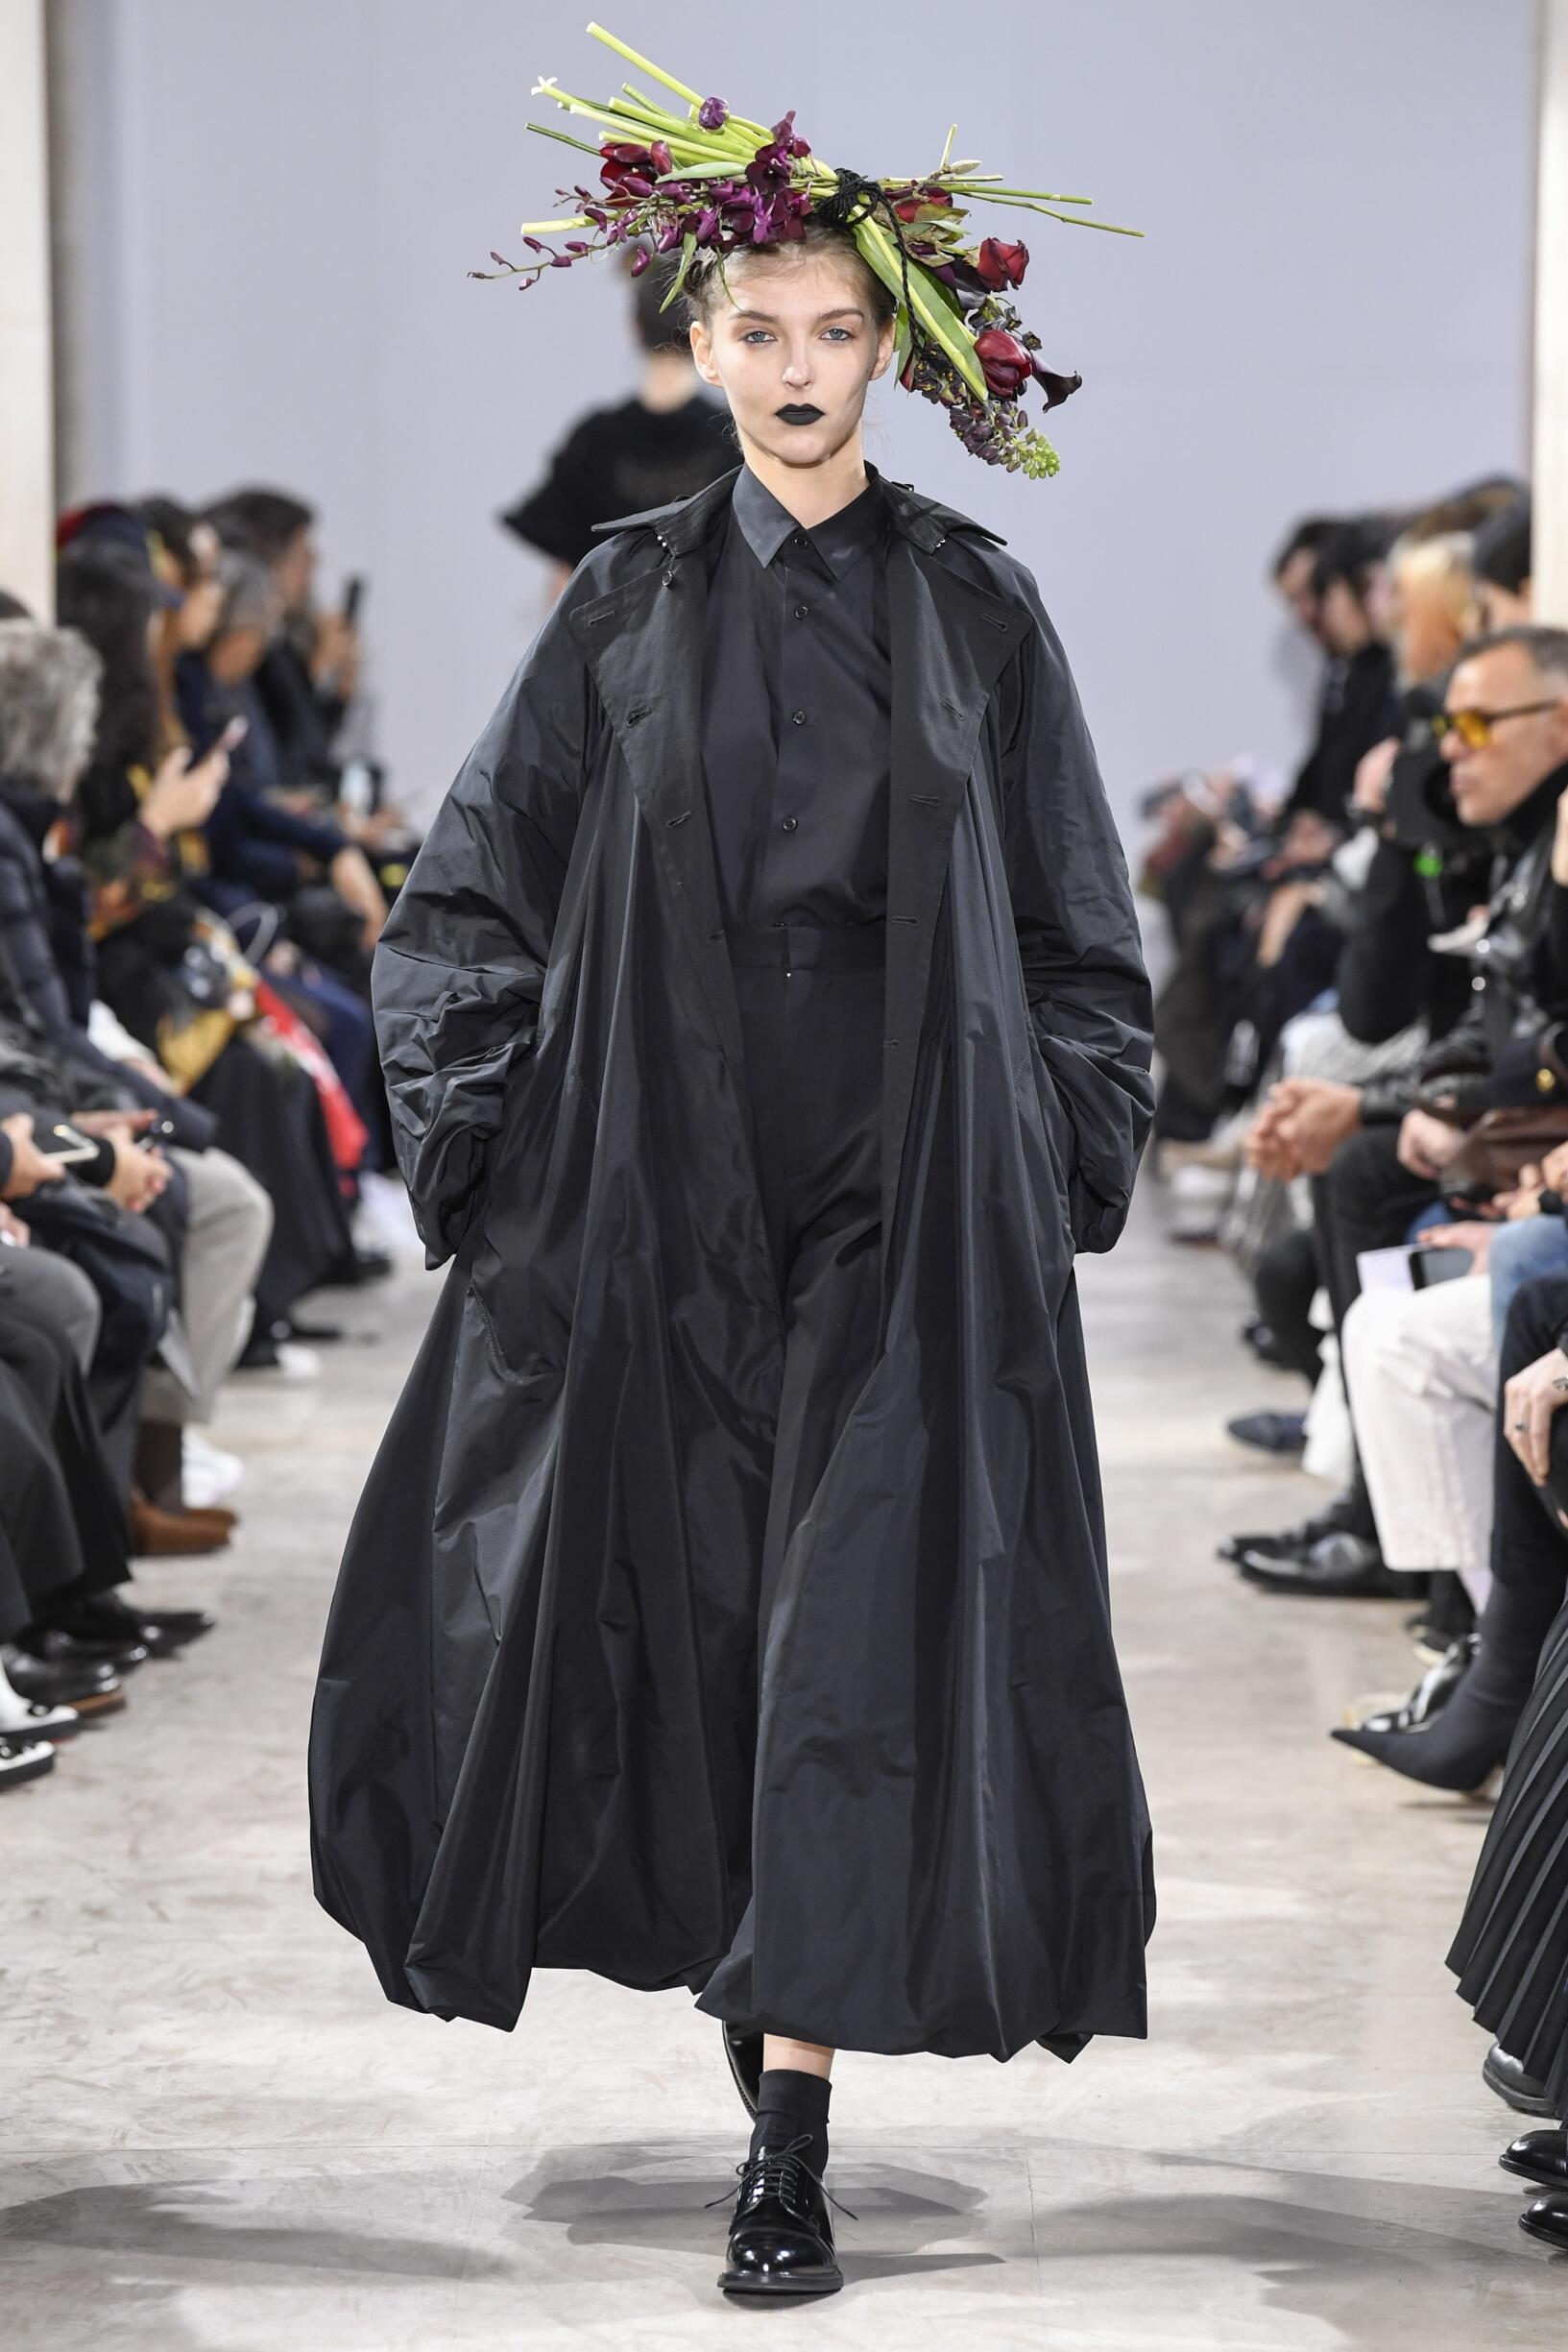 Fashion Woman Model Noir Kei Ninomiya Catwalk